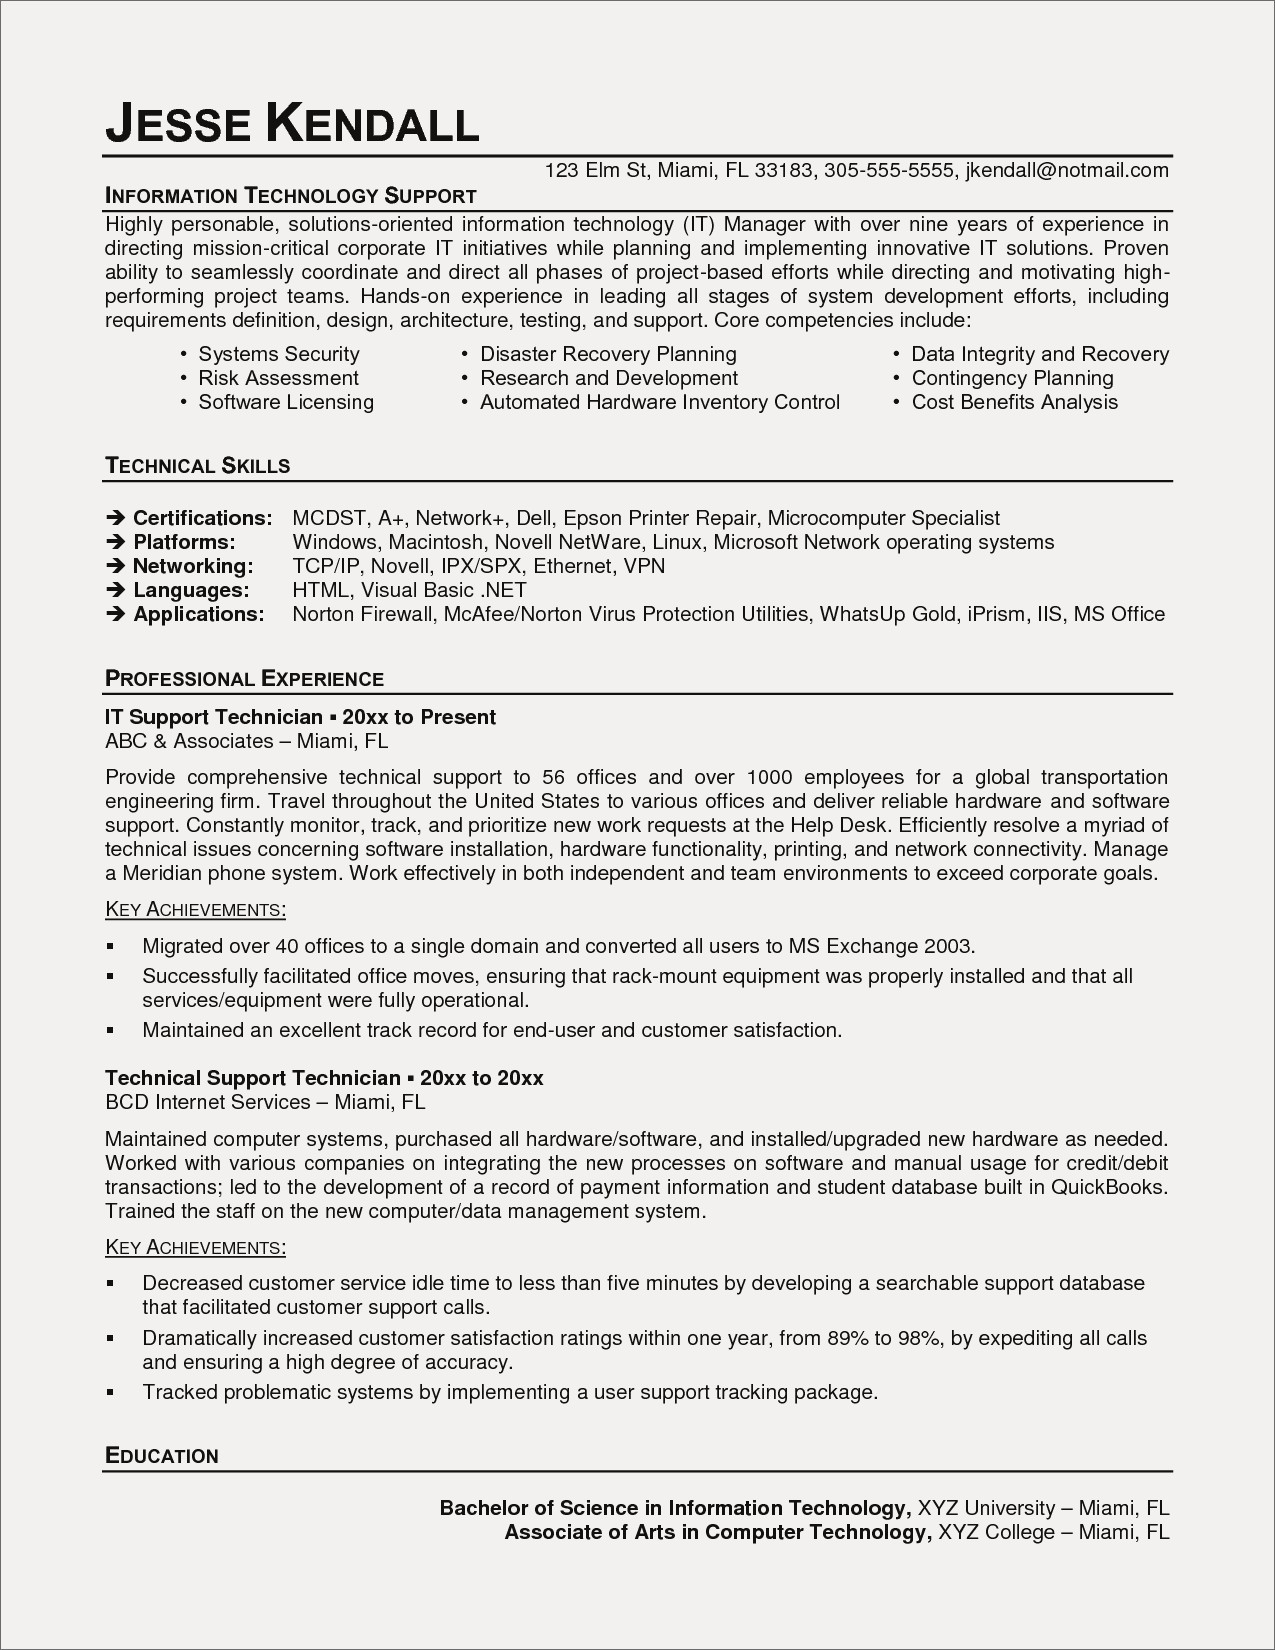 auto job resume example-Automotive Resume New Auto Mechanic Resume American Resume Sample New Student Resume 0d 8-k